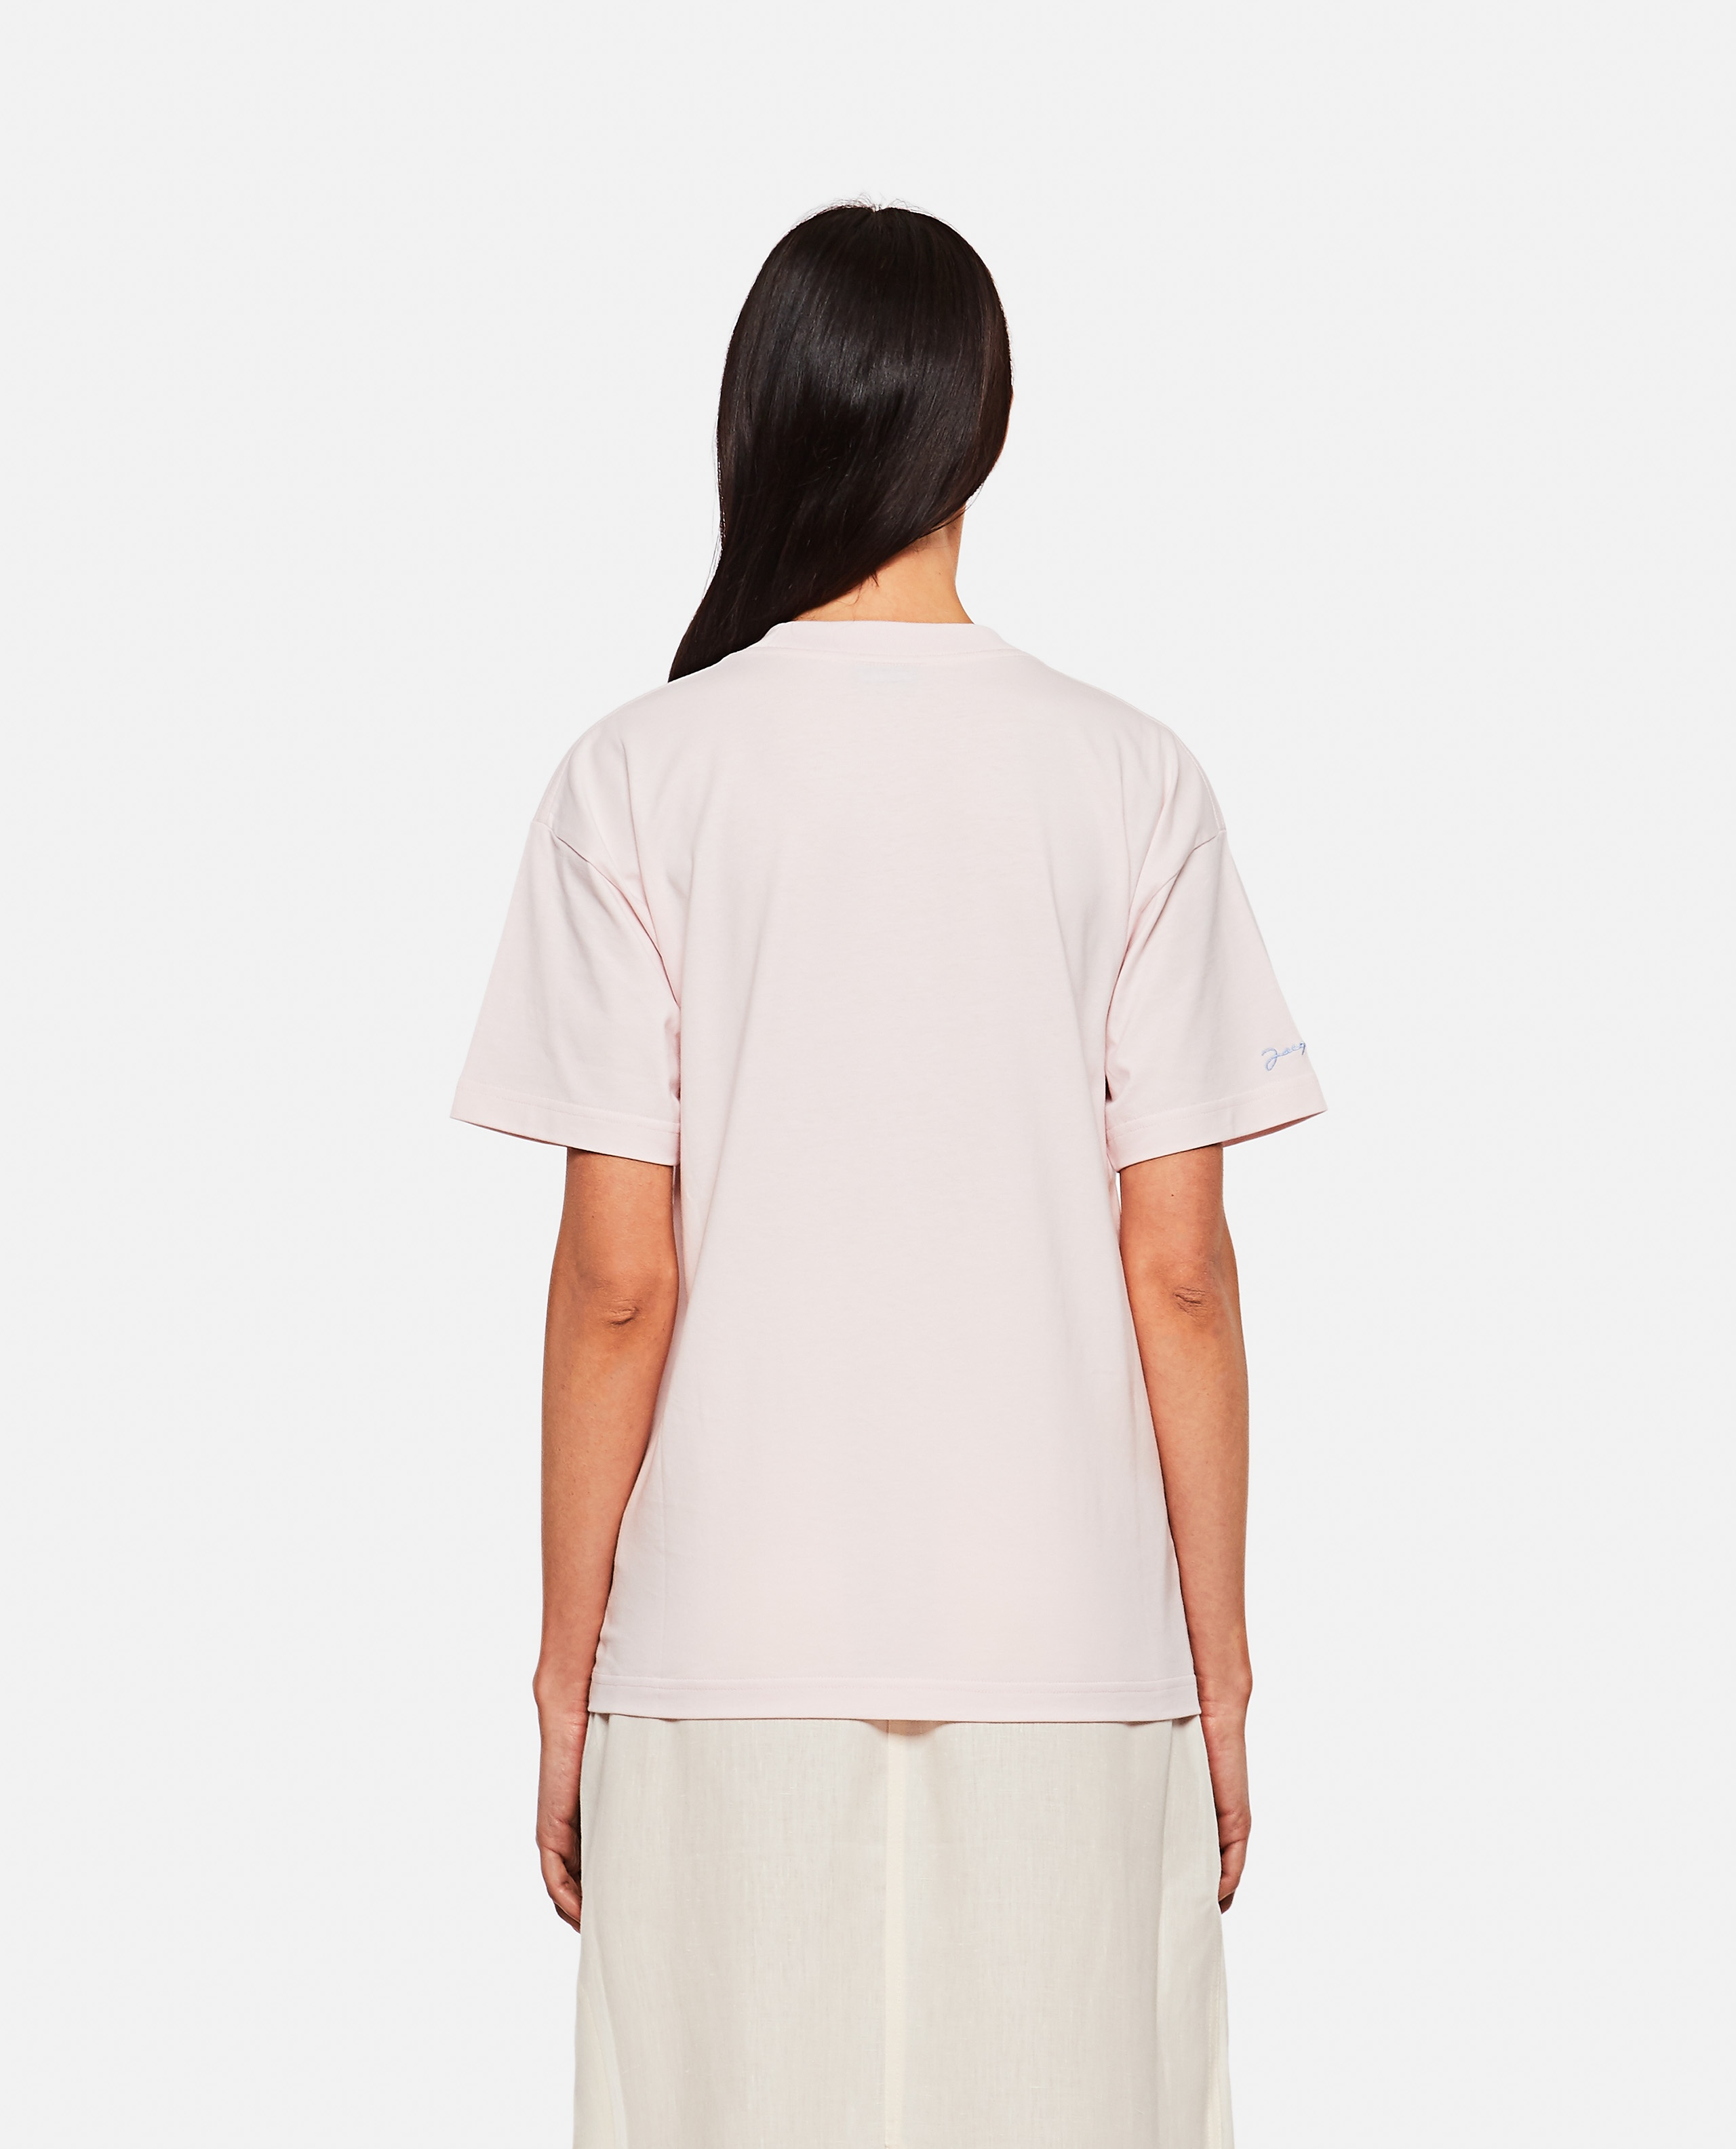 T-shirt in cotone con stampa Donna Jacquemus 000302340044402 3